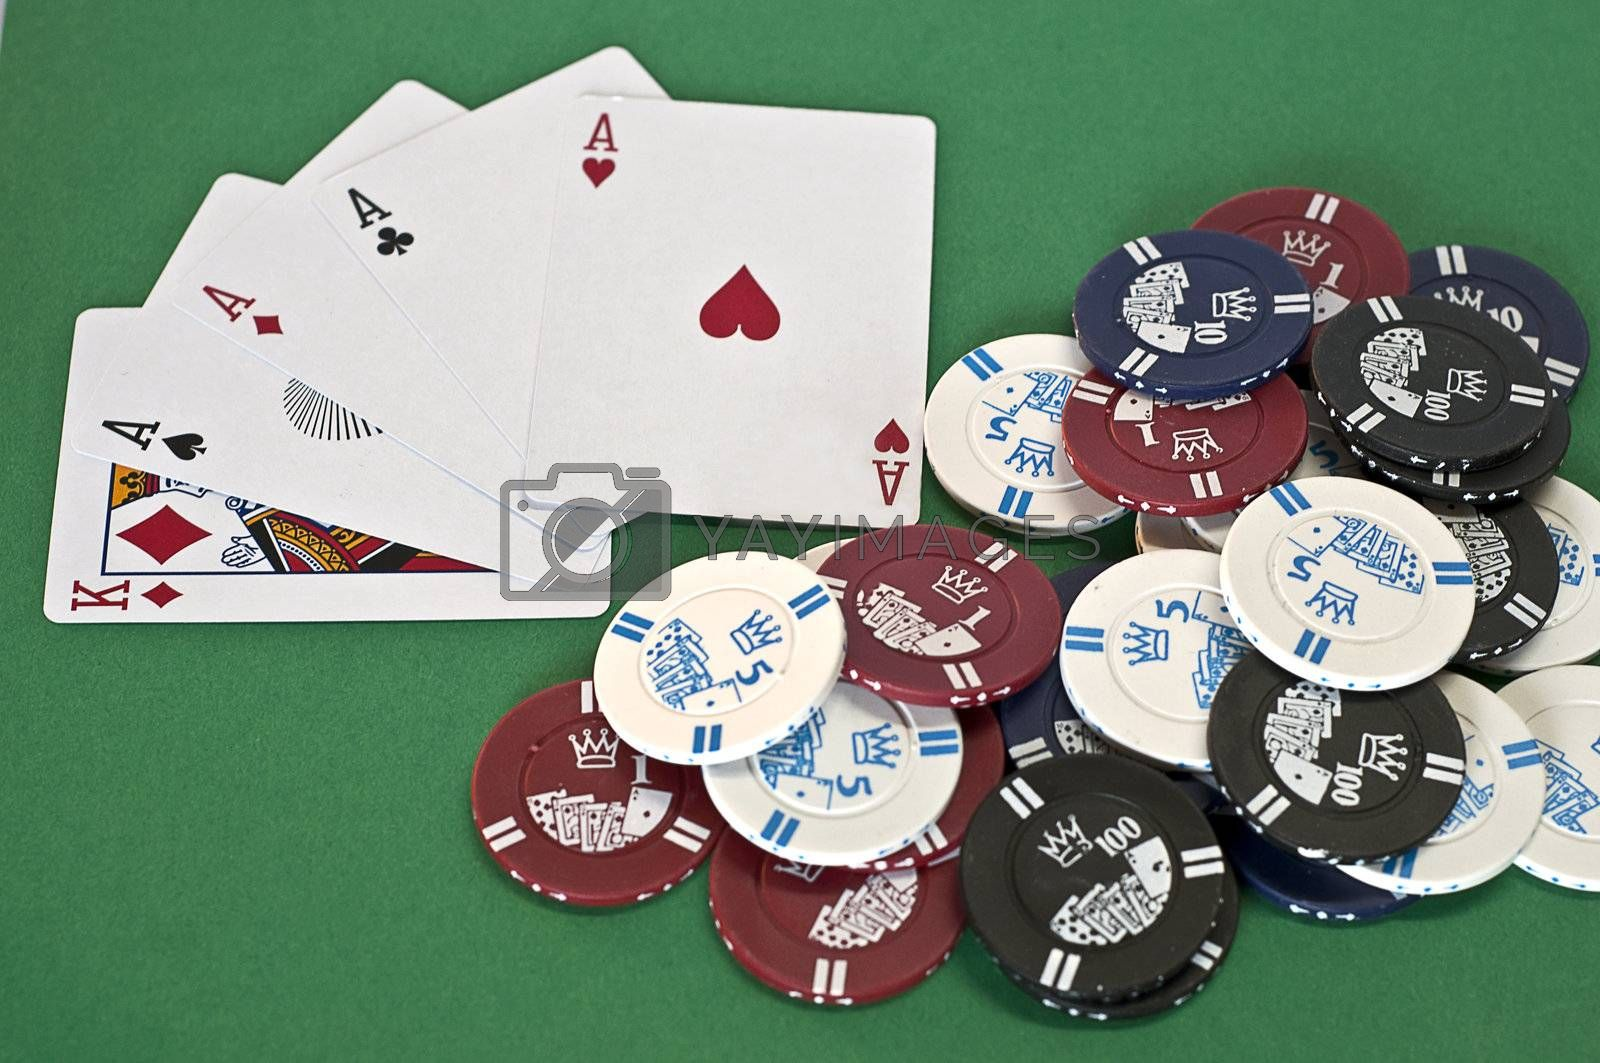 poker chips with axes of different cuts and colors on green background